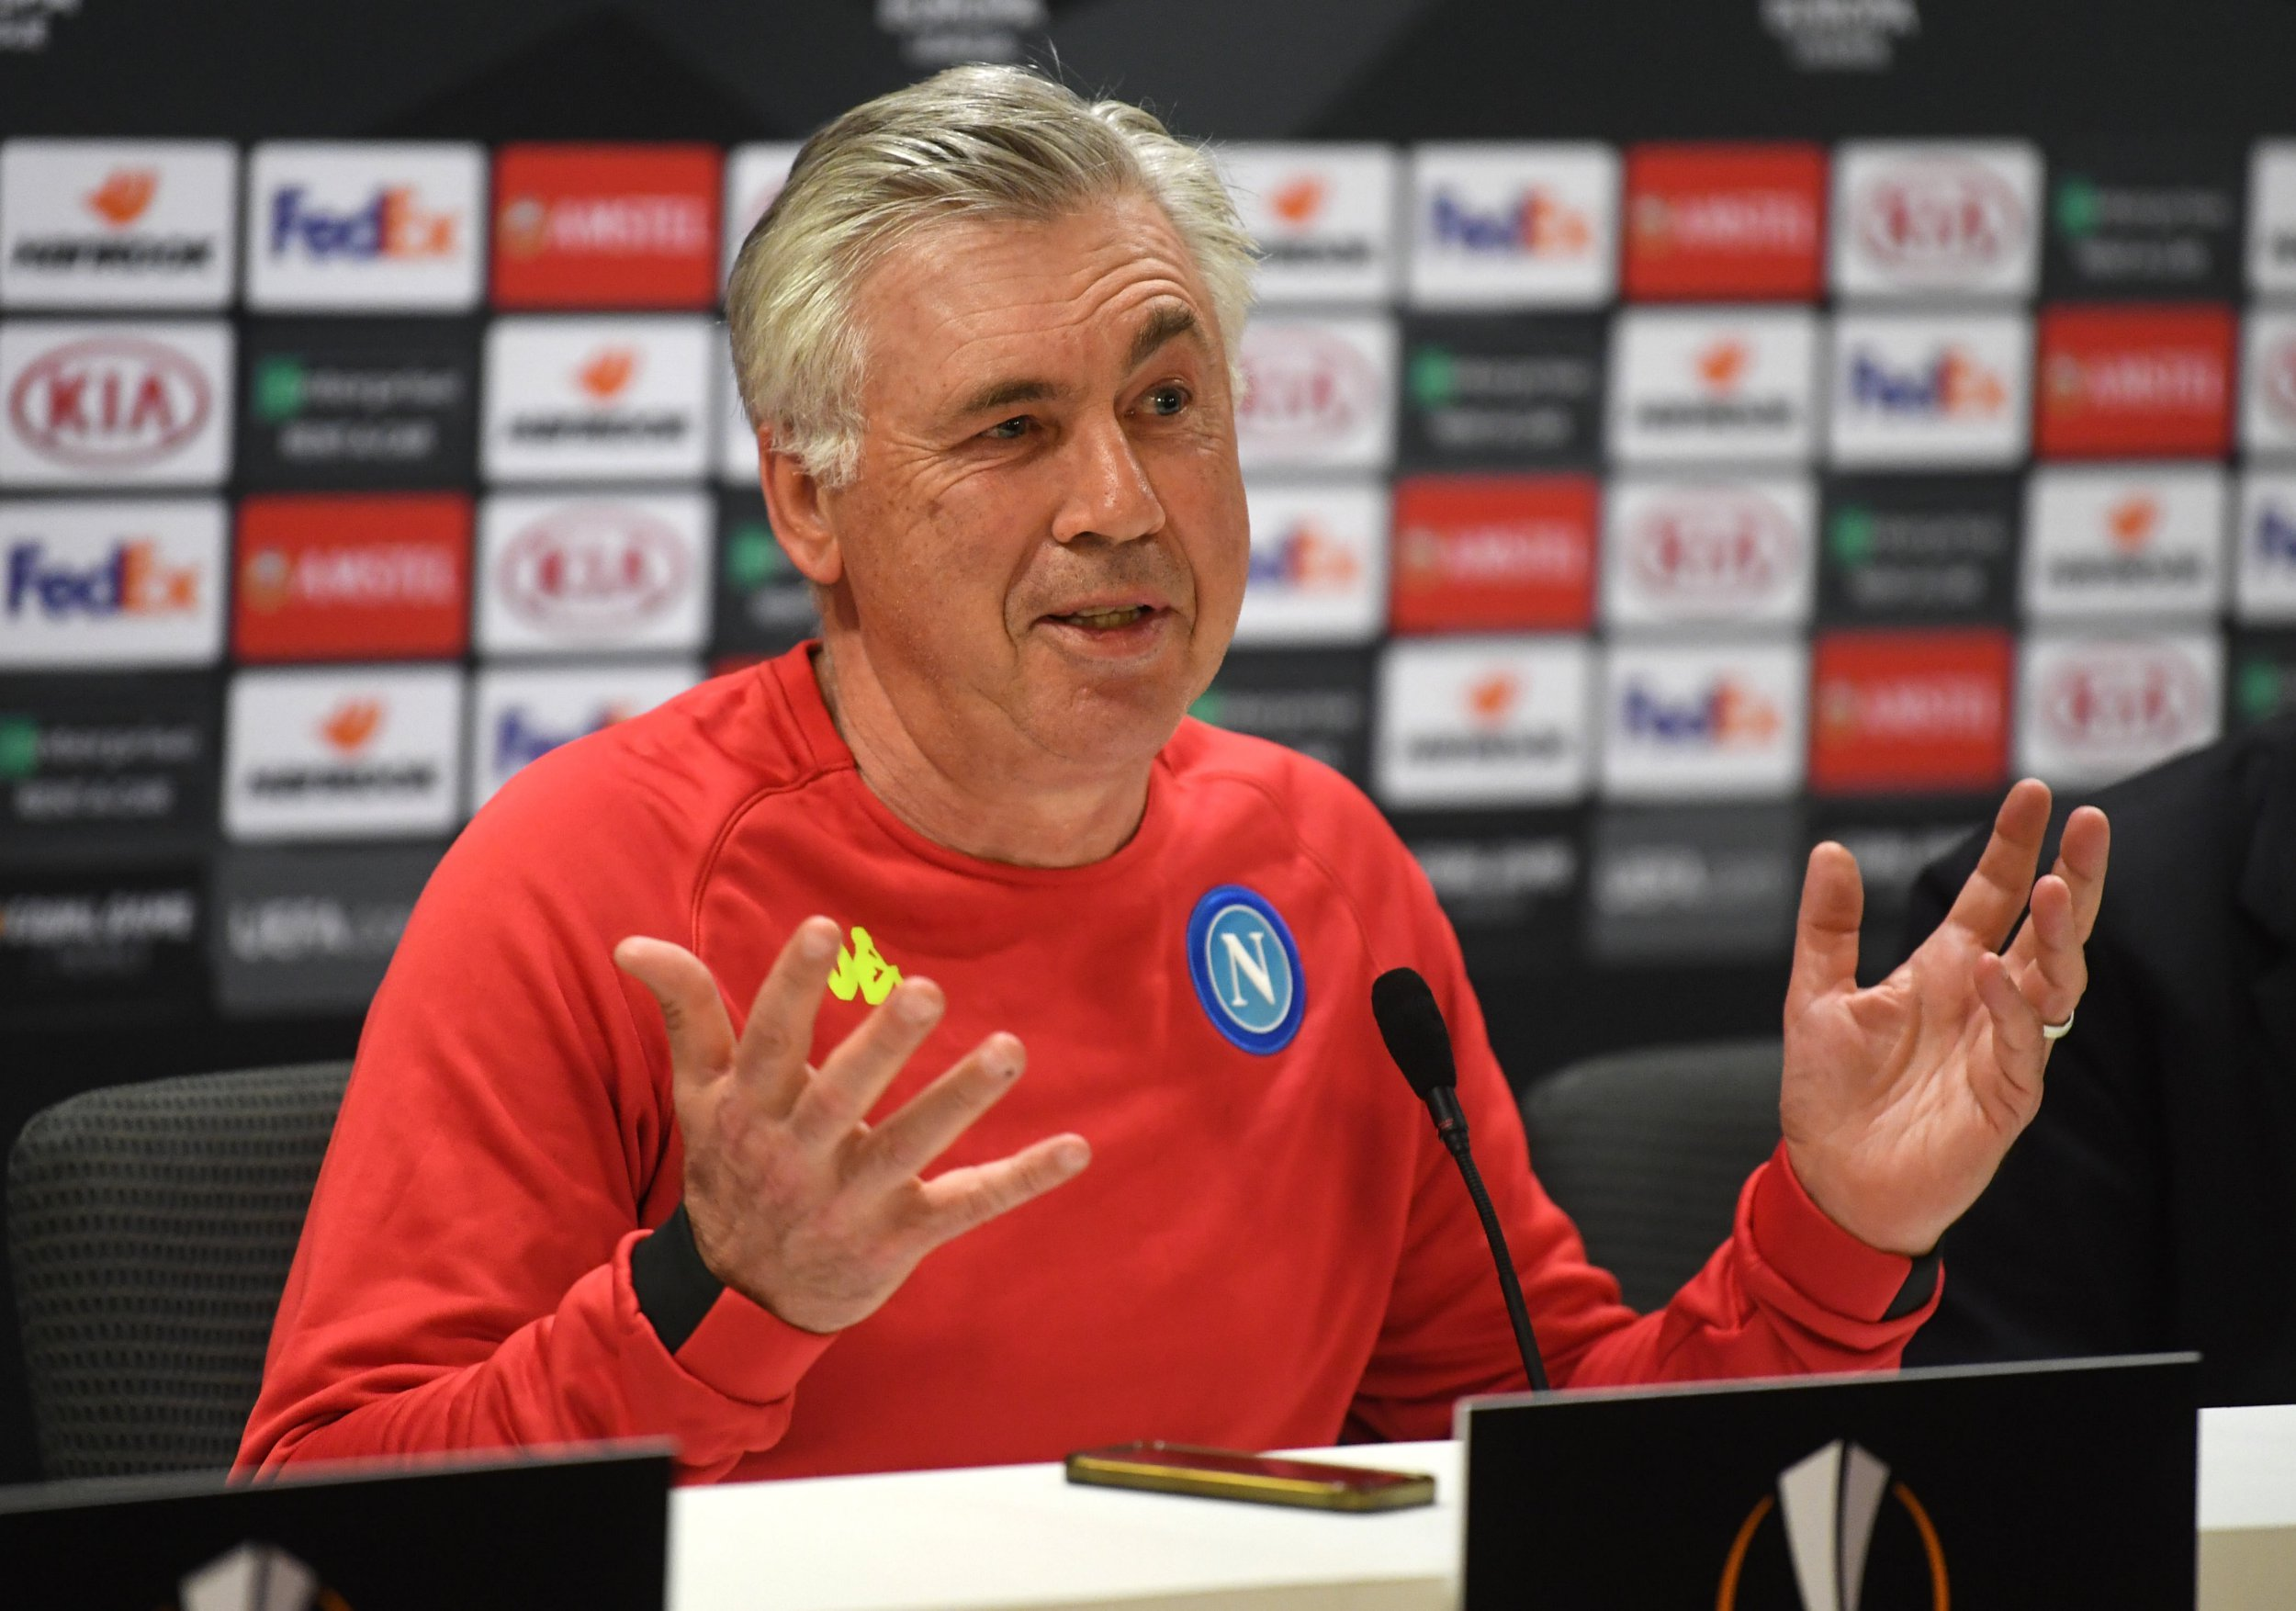 epa07497273 Napoli's head coach Carlo Ancelotti attends a media conference in London, Britain, 10 April 2019. SSC Napoli faces Arsenal FC in an UEFA Europa League quarter final first leg soccer match on 11 April 2019. EPA/NEIL HALL